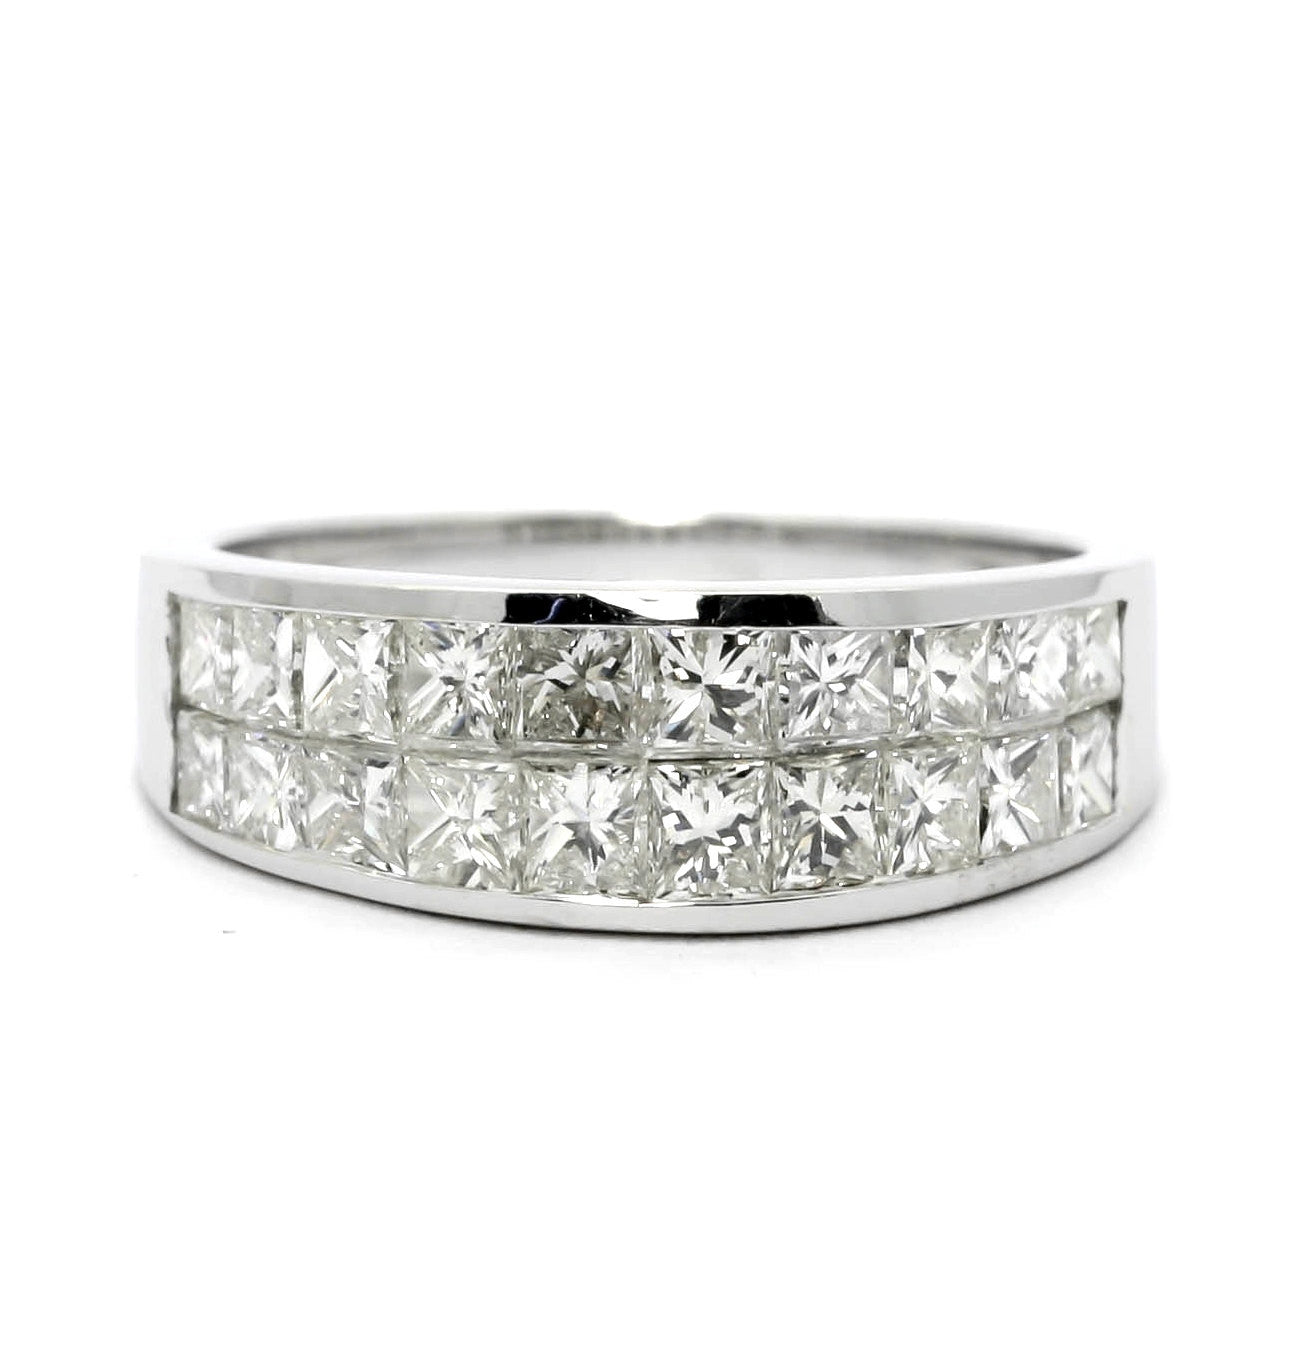 Diamond Wedding Band, Anniversary Ring, Cocktail Ring, Invisible Setting, Princess Cut Diamonds.